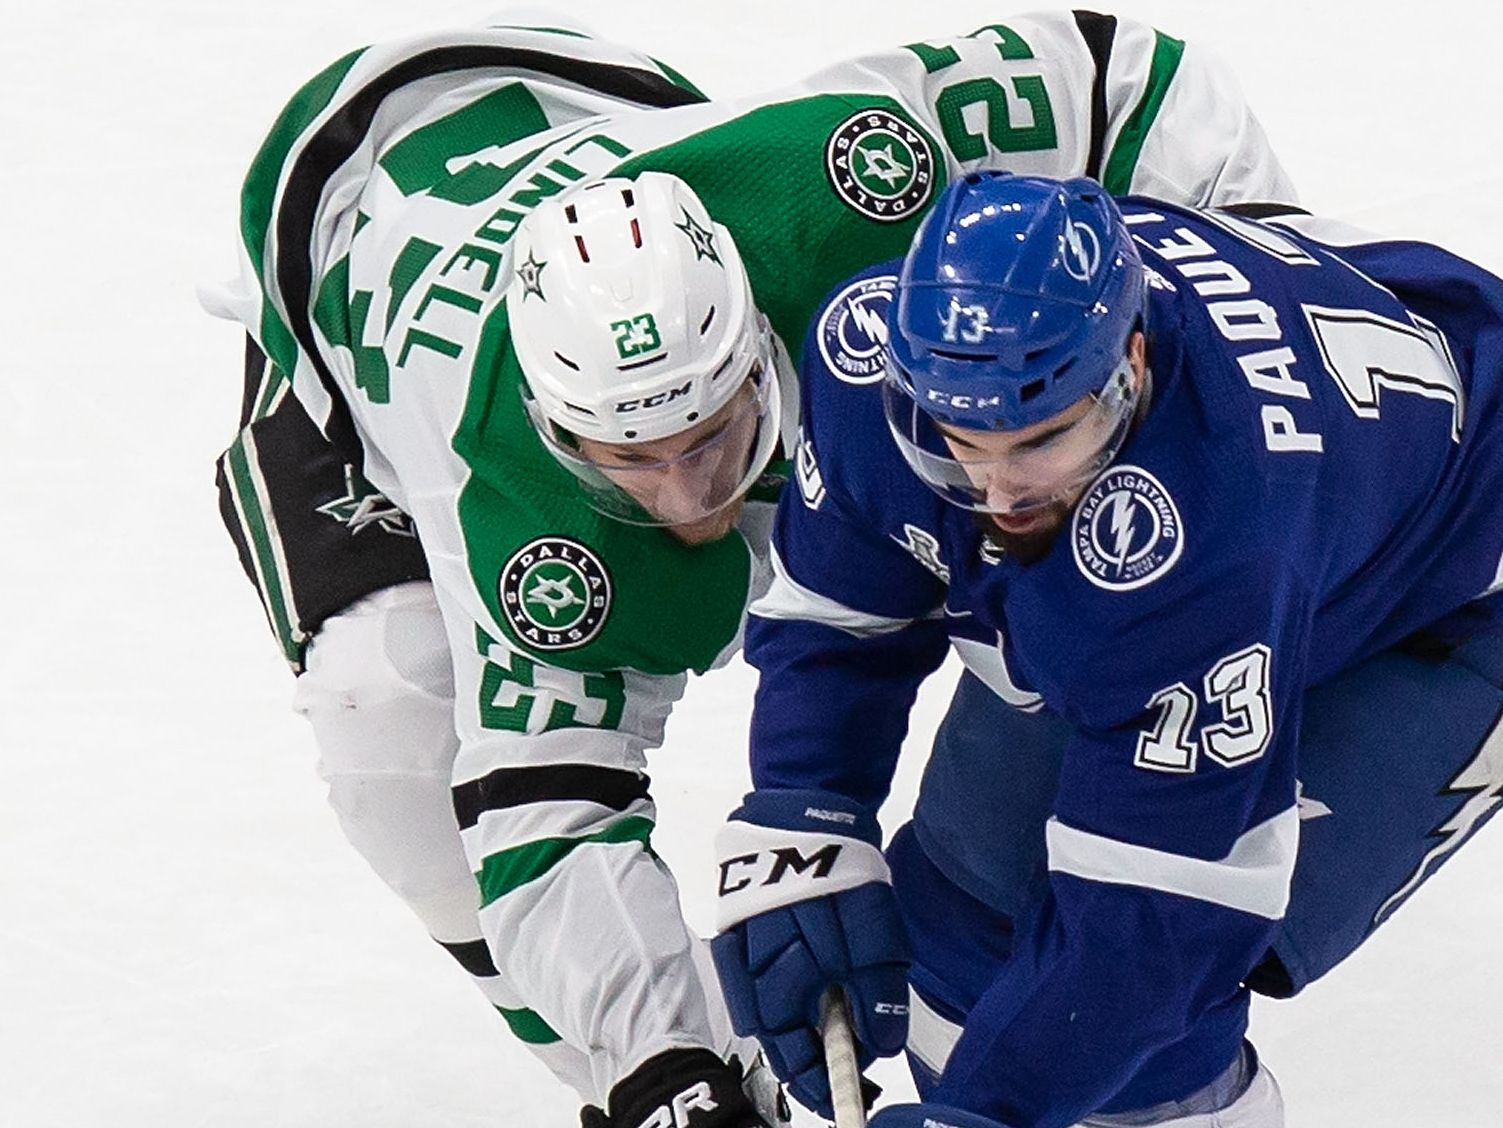 Esa Lindell (23) of the Dallas Stars battles against Cedric Paquette (13) of the Tampa Bay Lightning during Game Two of the Stanley Cup Final at Rogers Place in Edmonton, Alberta, Canada on Monday, September 21, 2020. (Codie McLachlan/Special Contributor)